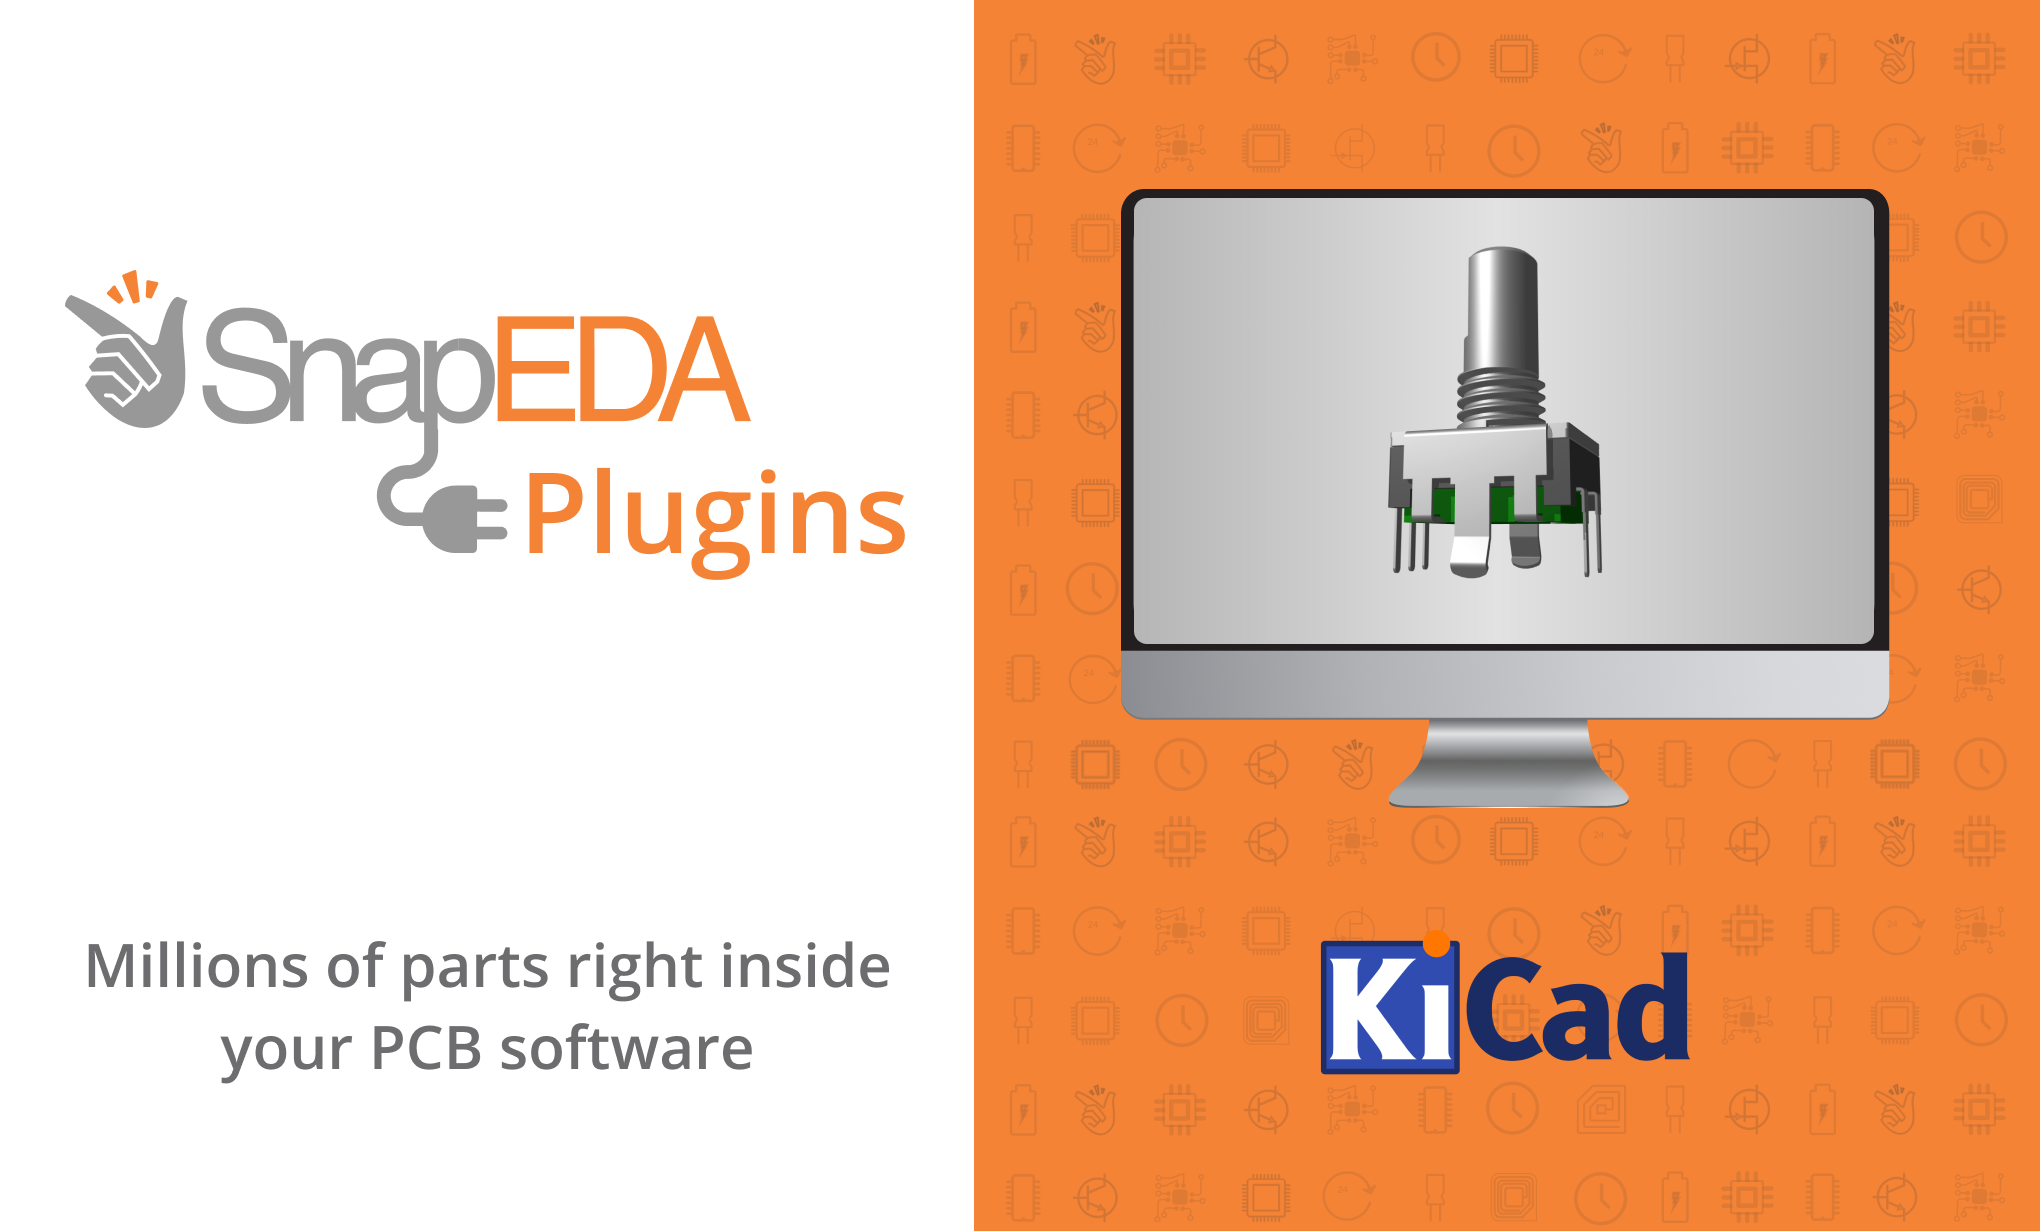 SnapEDA launches new KiCad plugin to help engineers design electronics faster